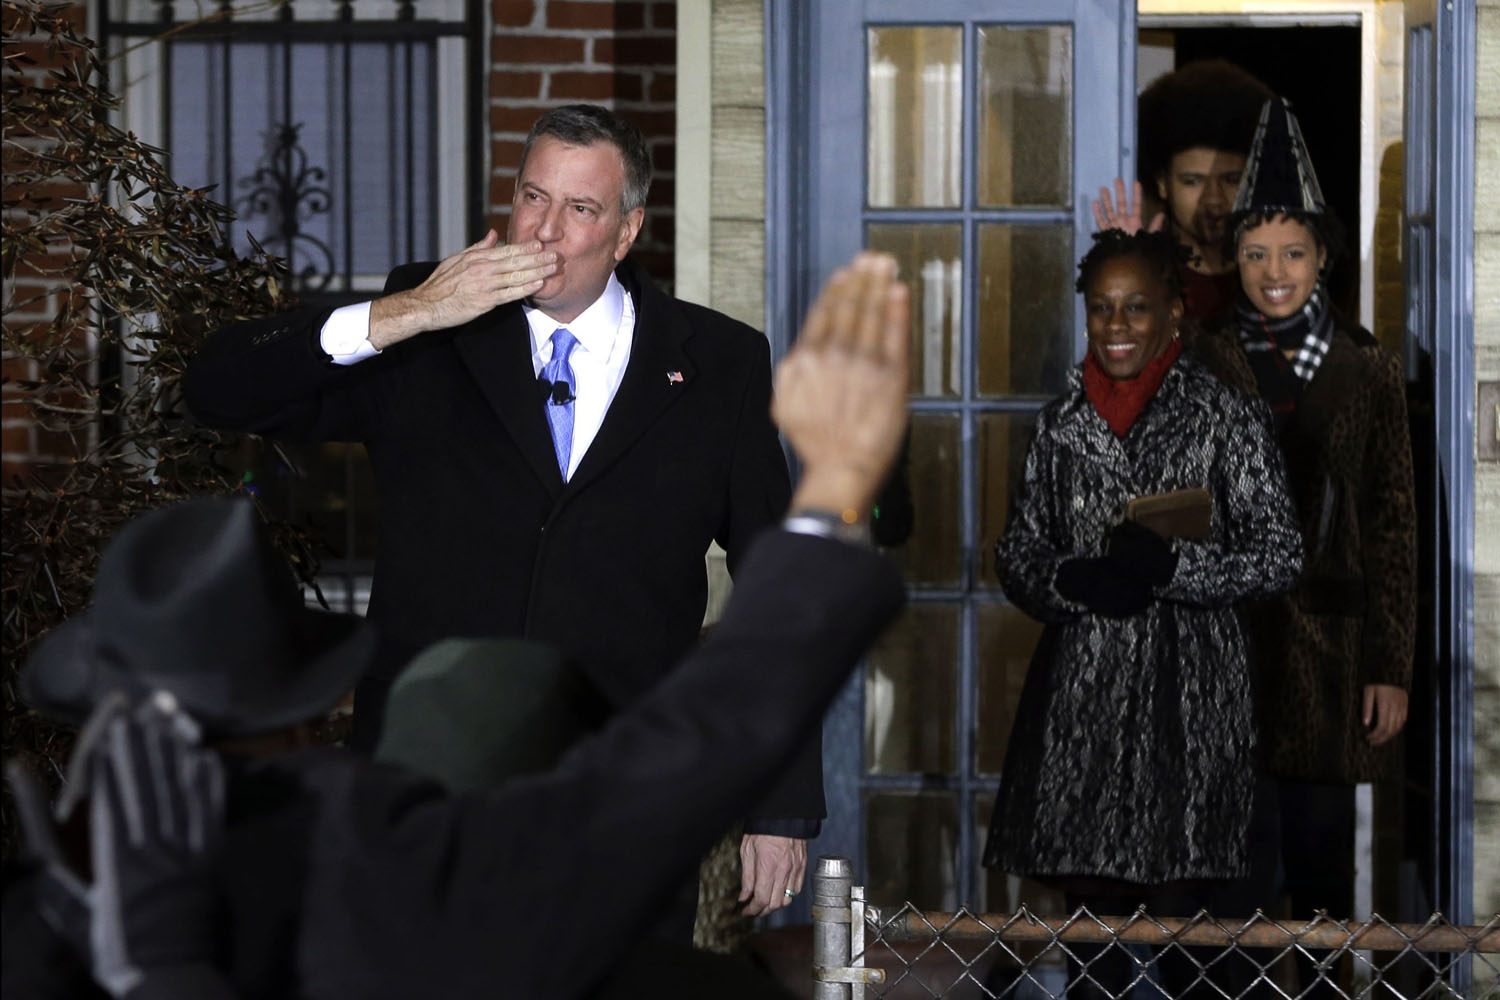 Jan. 1, 2014. Bill de Blasio blows a kiss and waves as he exits his house with his family for his swearing in ceremony as New York mayor at the start of the new year, in New York.